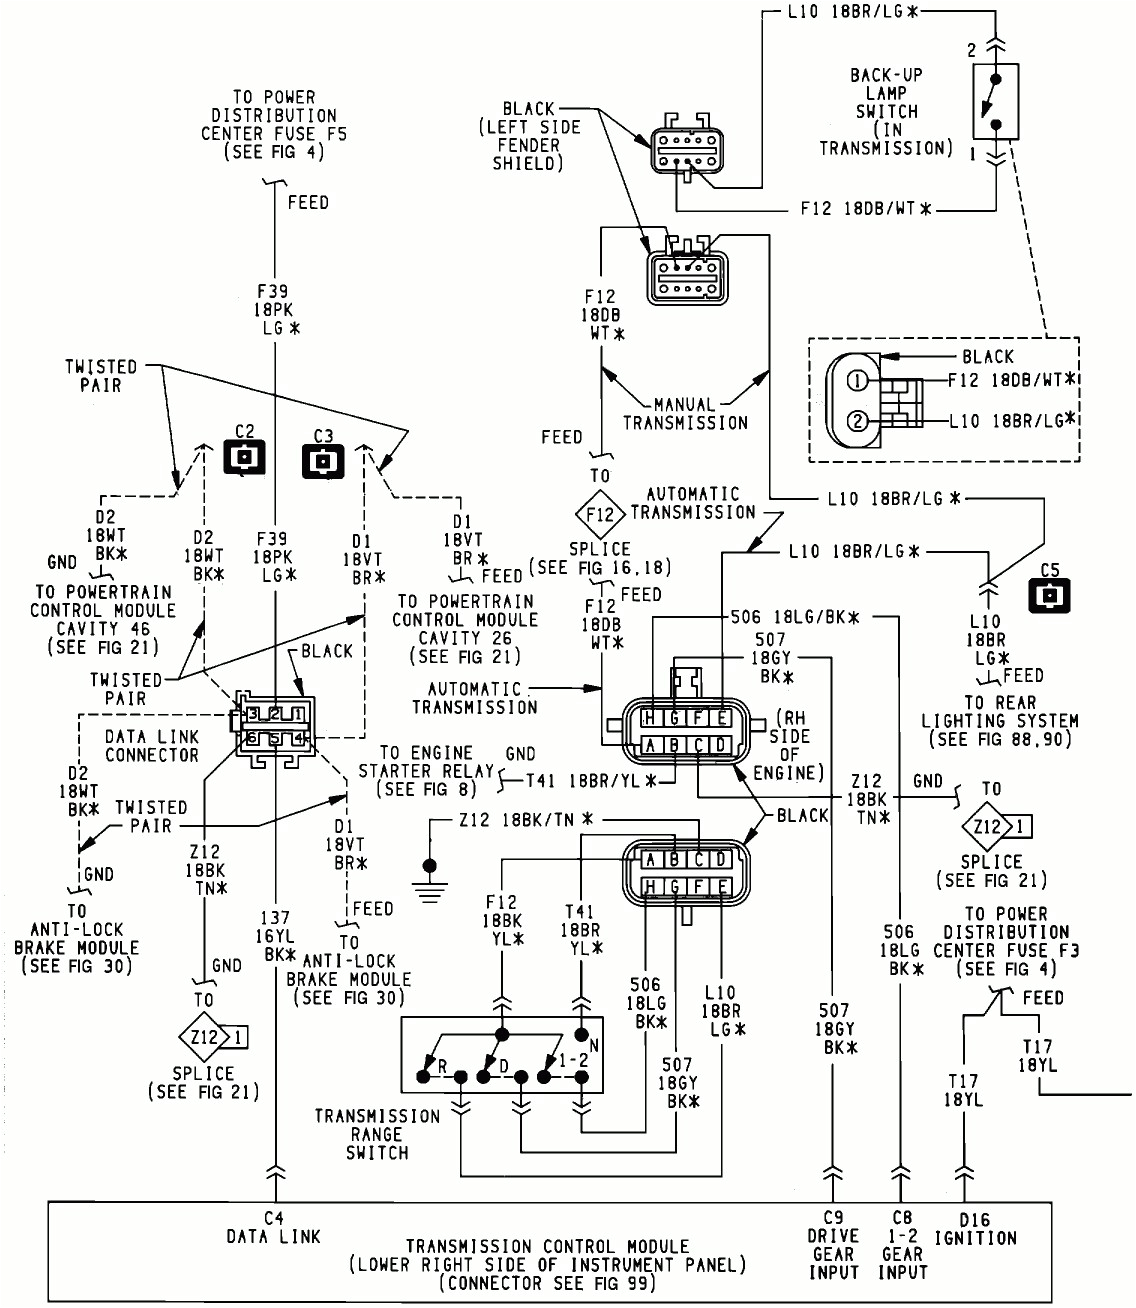 jeep trailer plug wiring diagram wiring diagram operations 95 jeep trailer wiring book diagram schema jeep